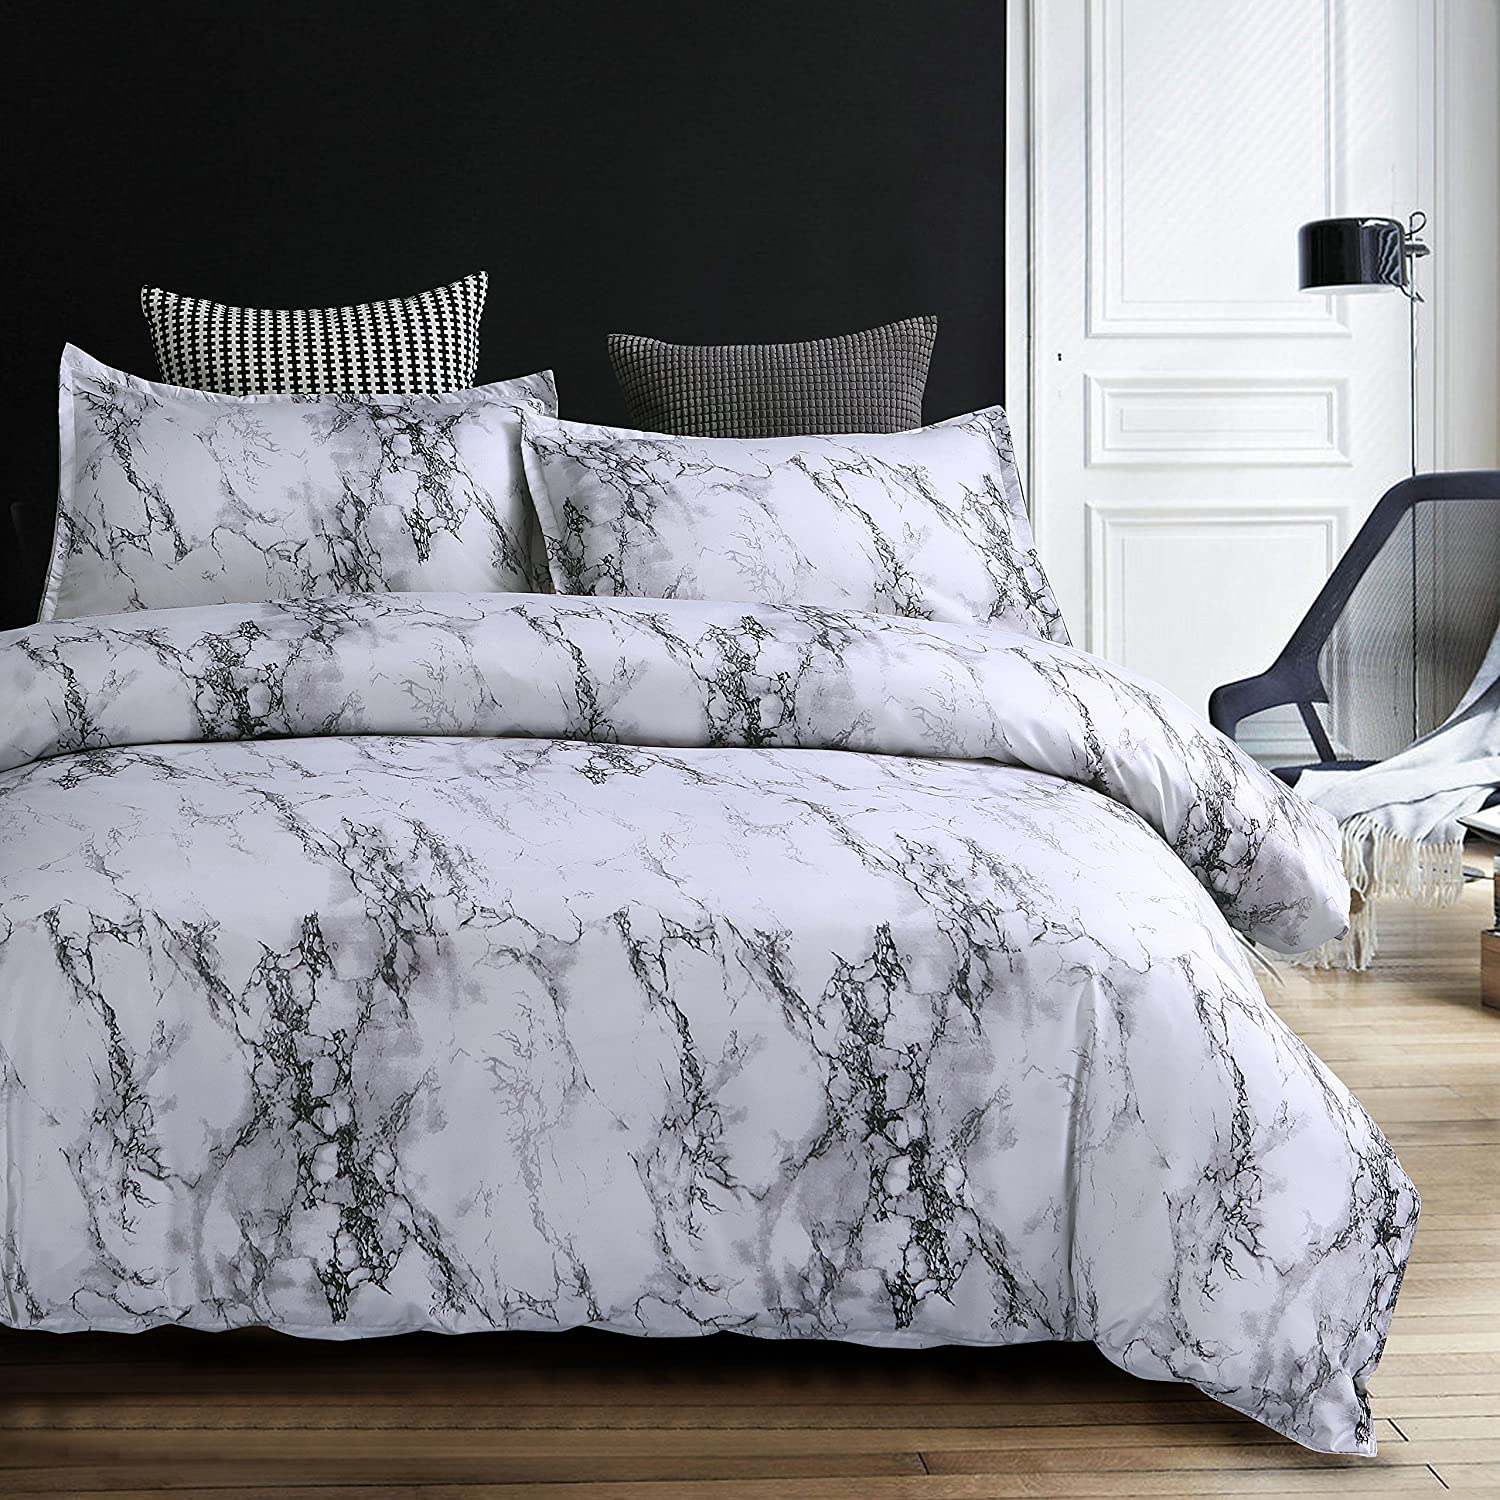 YU YANG Queen Bedding Duvet Cover Set White Marble 3 Piece Luxury Microfiber Down Comforter Quilt Cover with Zipper Closure